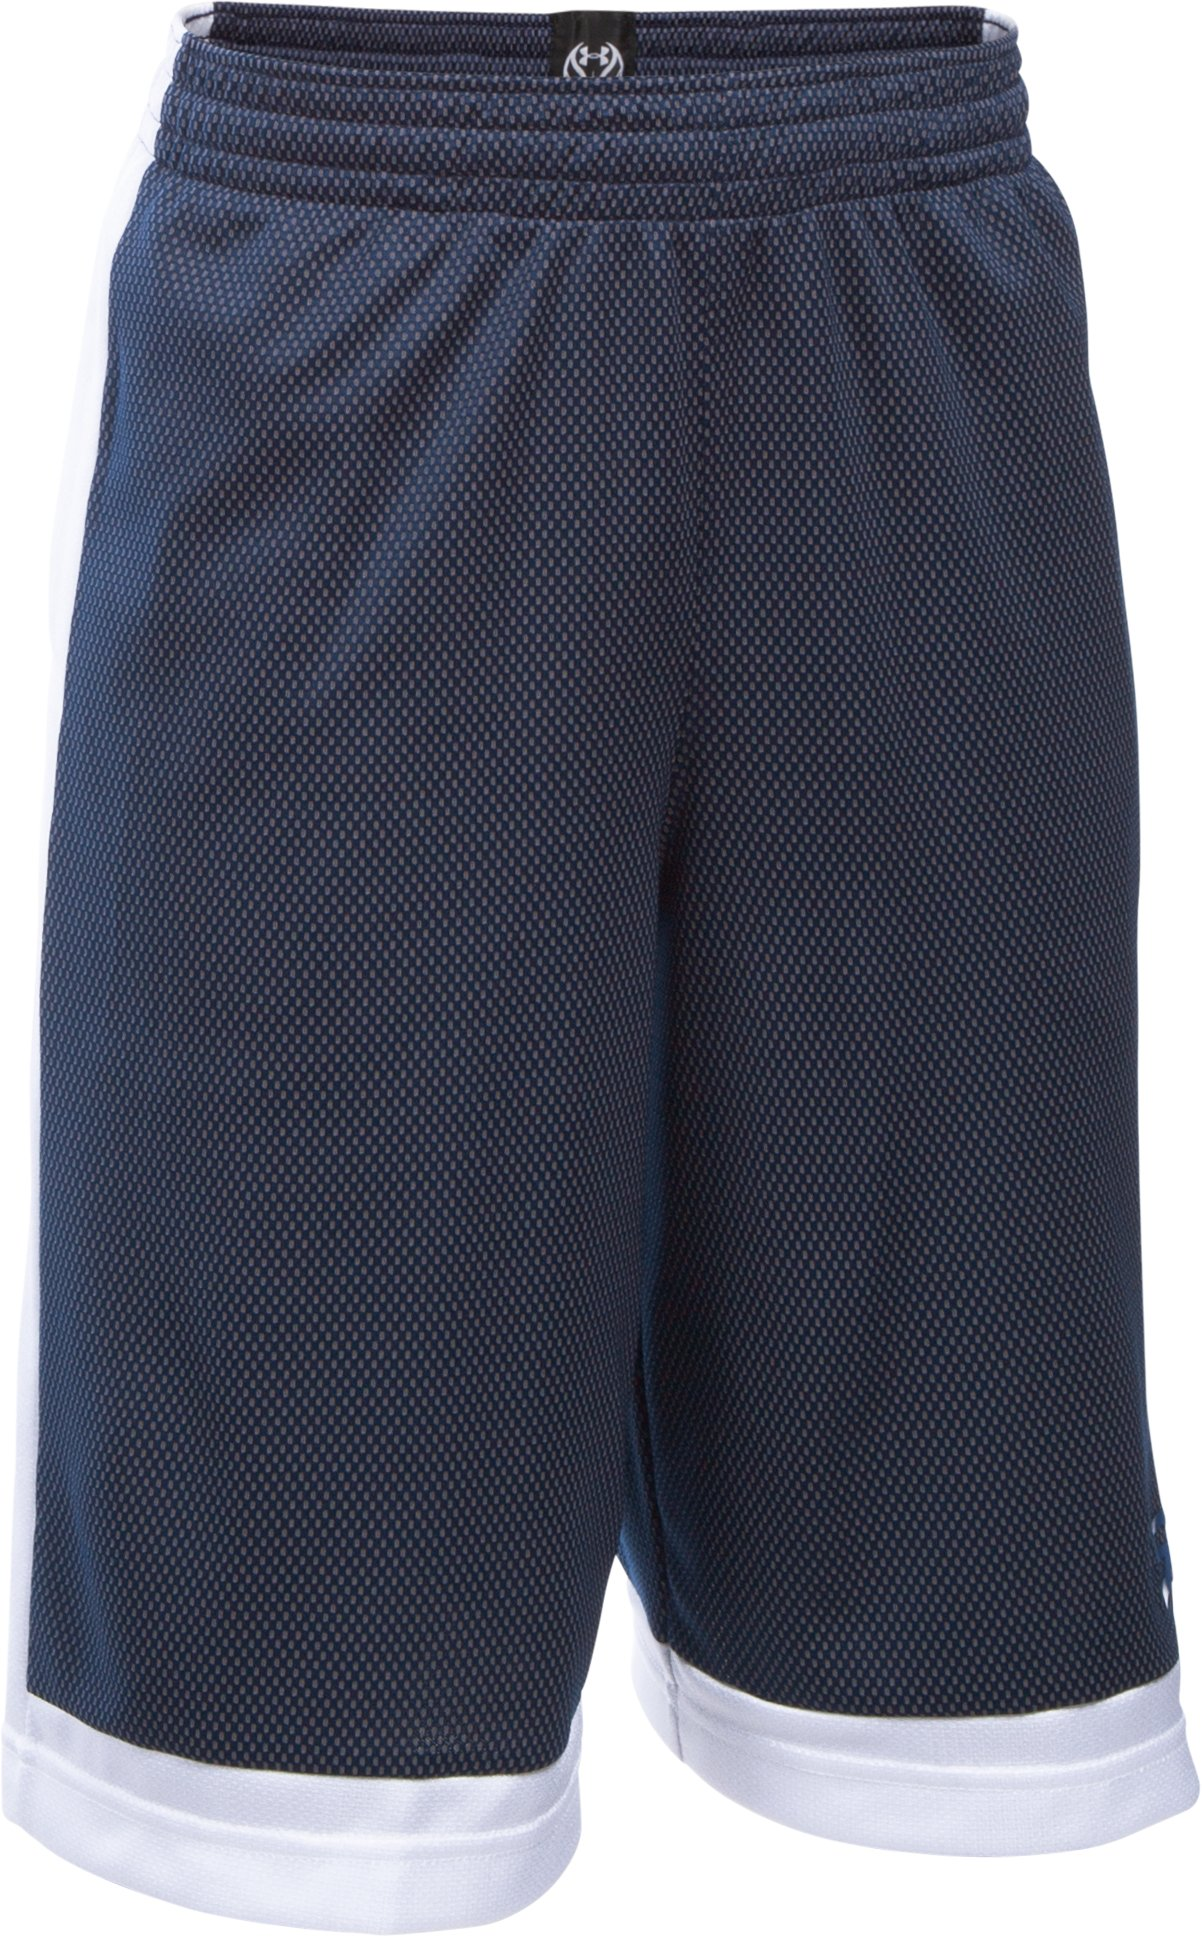 Boys' SC30 Essentials Shorts, Midnight Navy, undefined